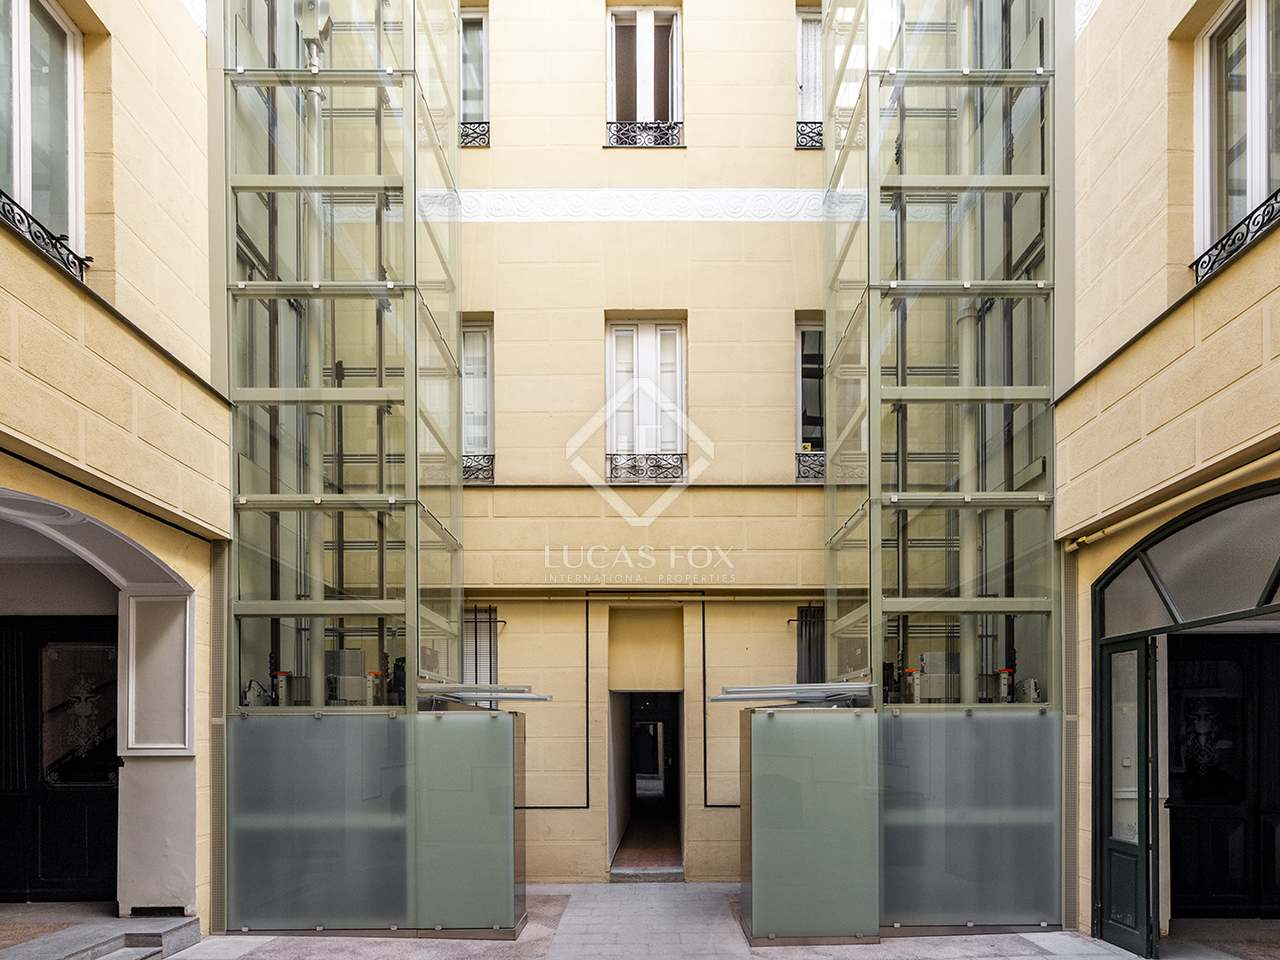 37m apartment for sale in recoletos madrid - Calle serrano 55 madrid ...